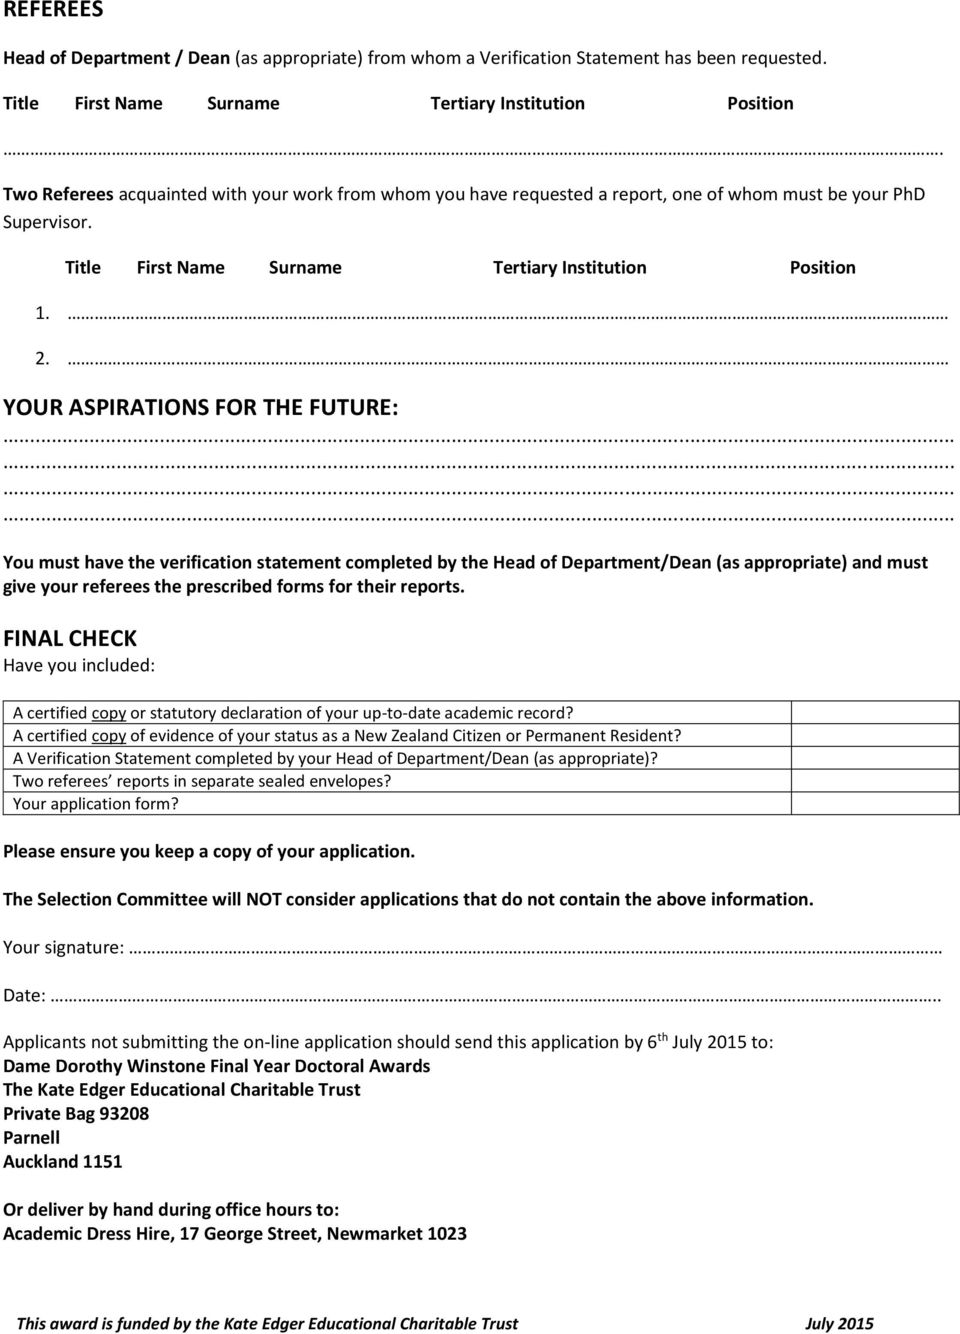 YOUR ASPIRATIONS FOR THE FUTURE:............ You must have the verification statement completed by the Head of Department/Dean (as appropriate) and must give your referees the prescribed forms for their reports.